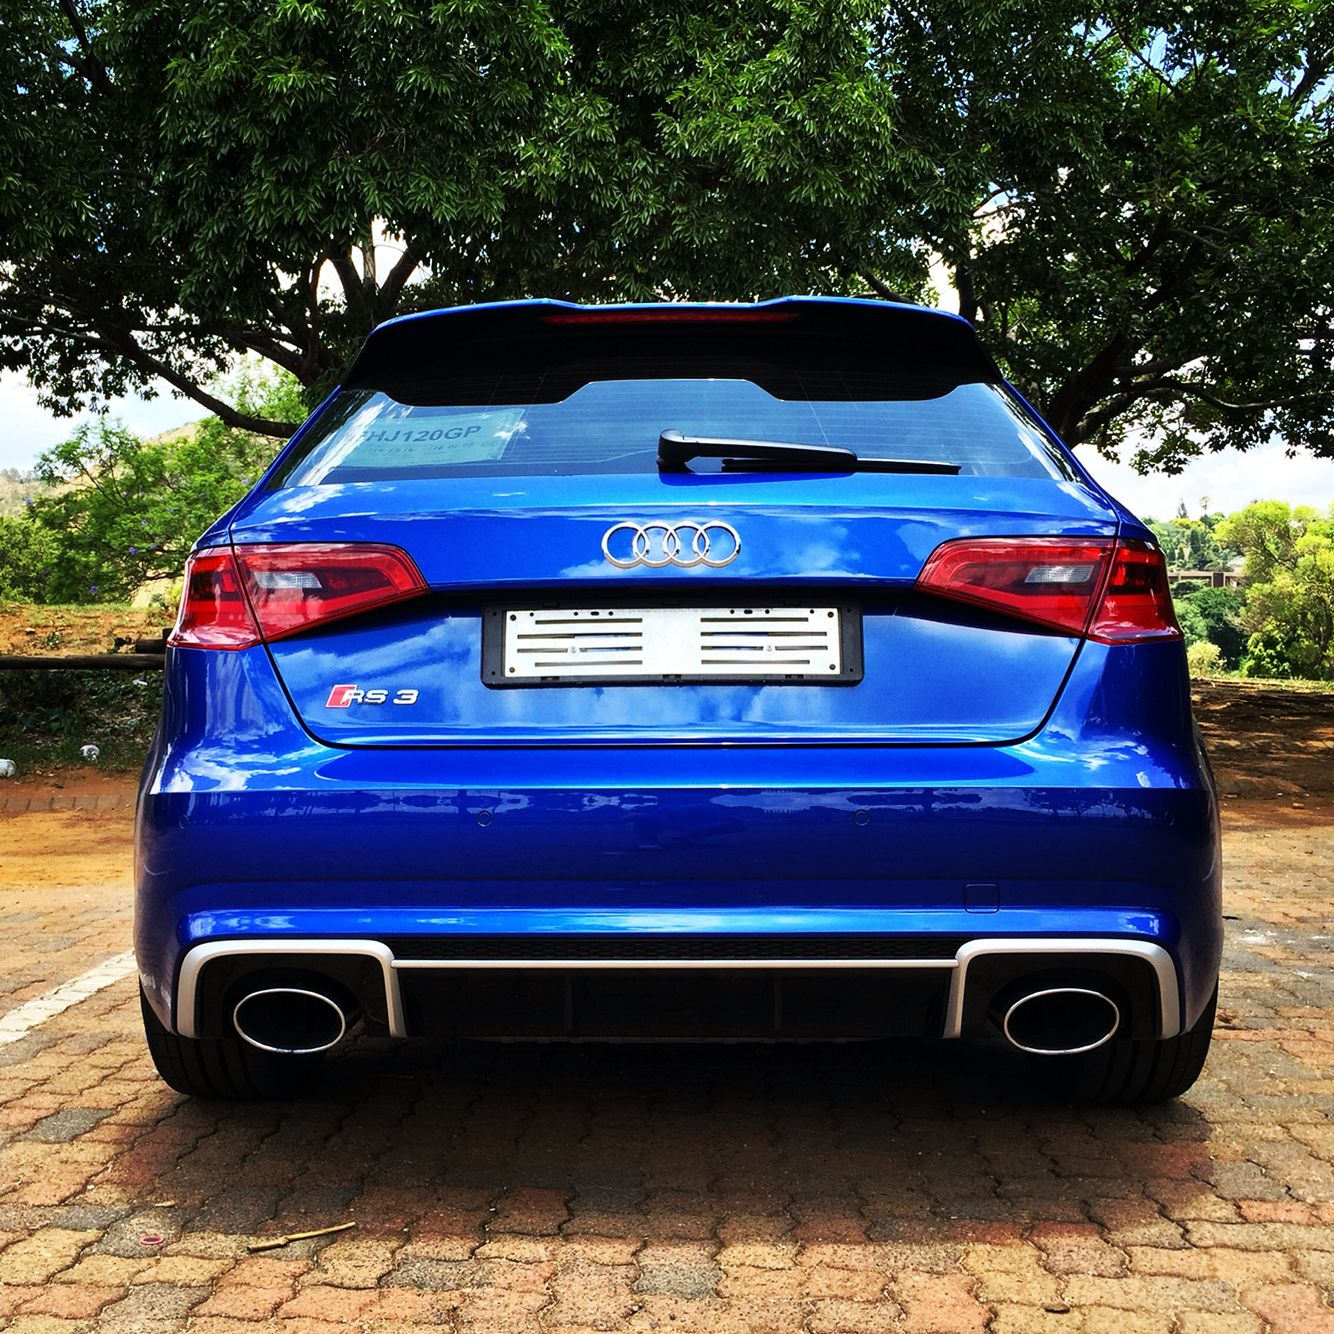 The Audi R V Plus Sepang Cars And Audi A - Audi car owners database